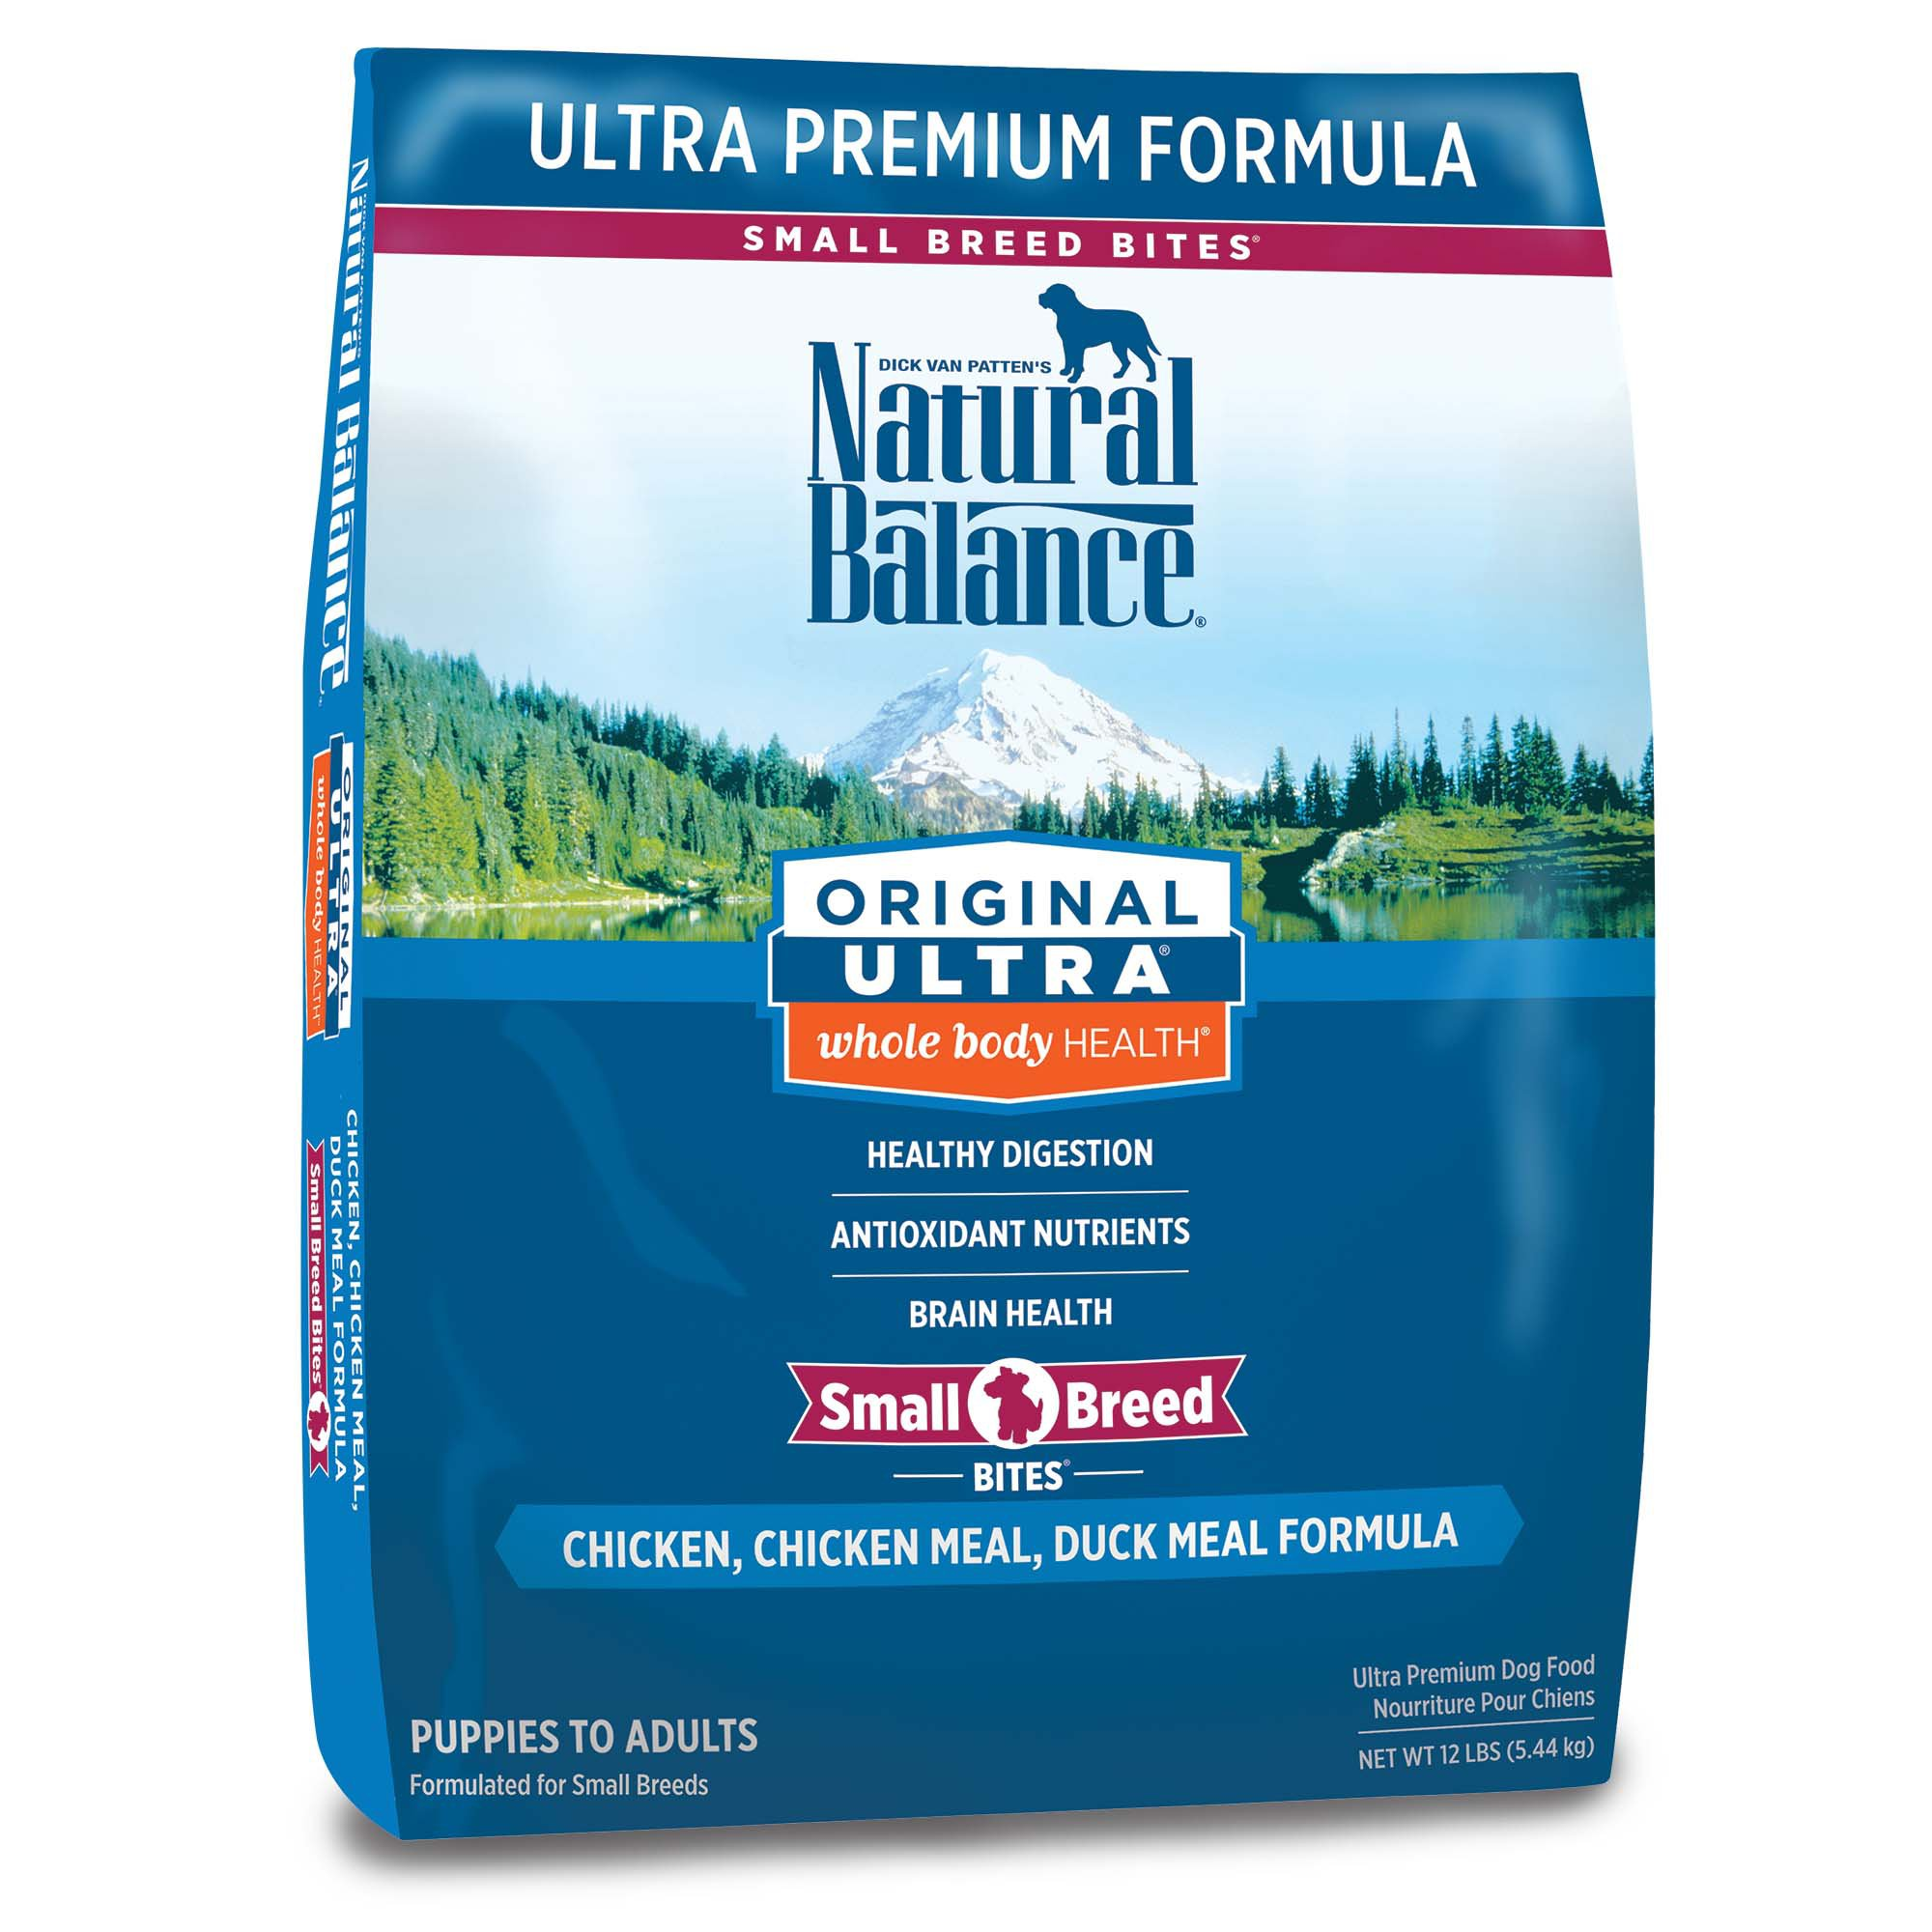 Natural Balance Small Breed Bites Original Ultra Whole Body Health Chicken, Chicken Meal, Duck ...